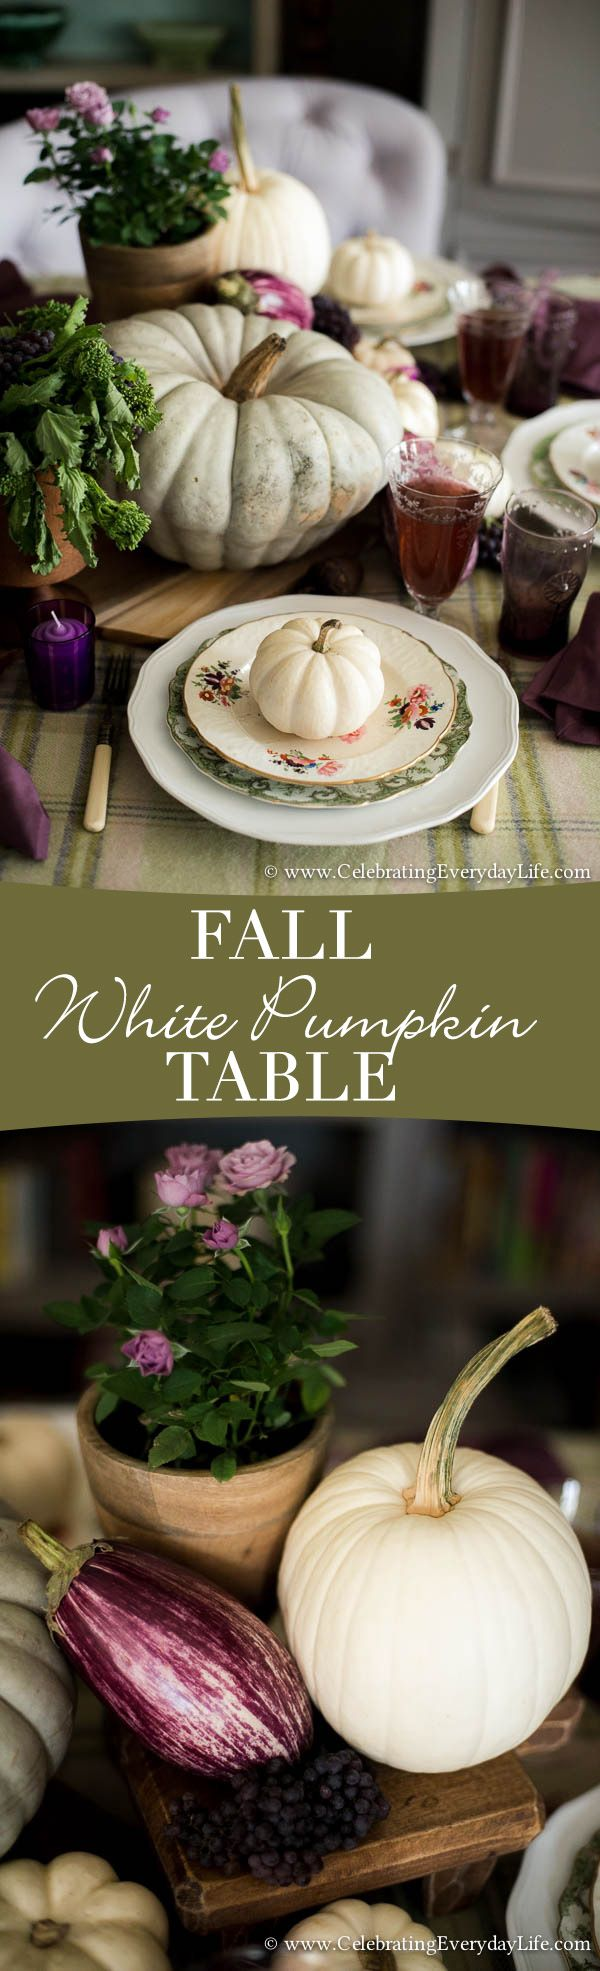 A Fall White Pumpkin Table with touches of green and purple - a creamy alternative for decorating this season!